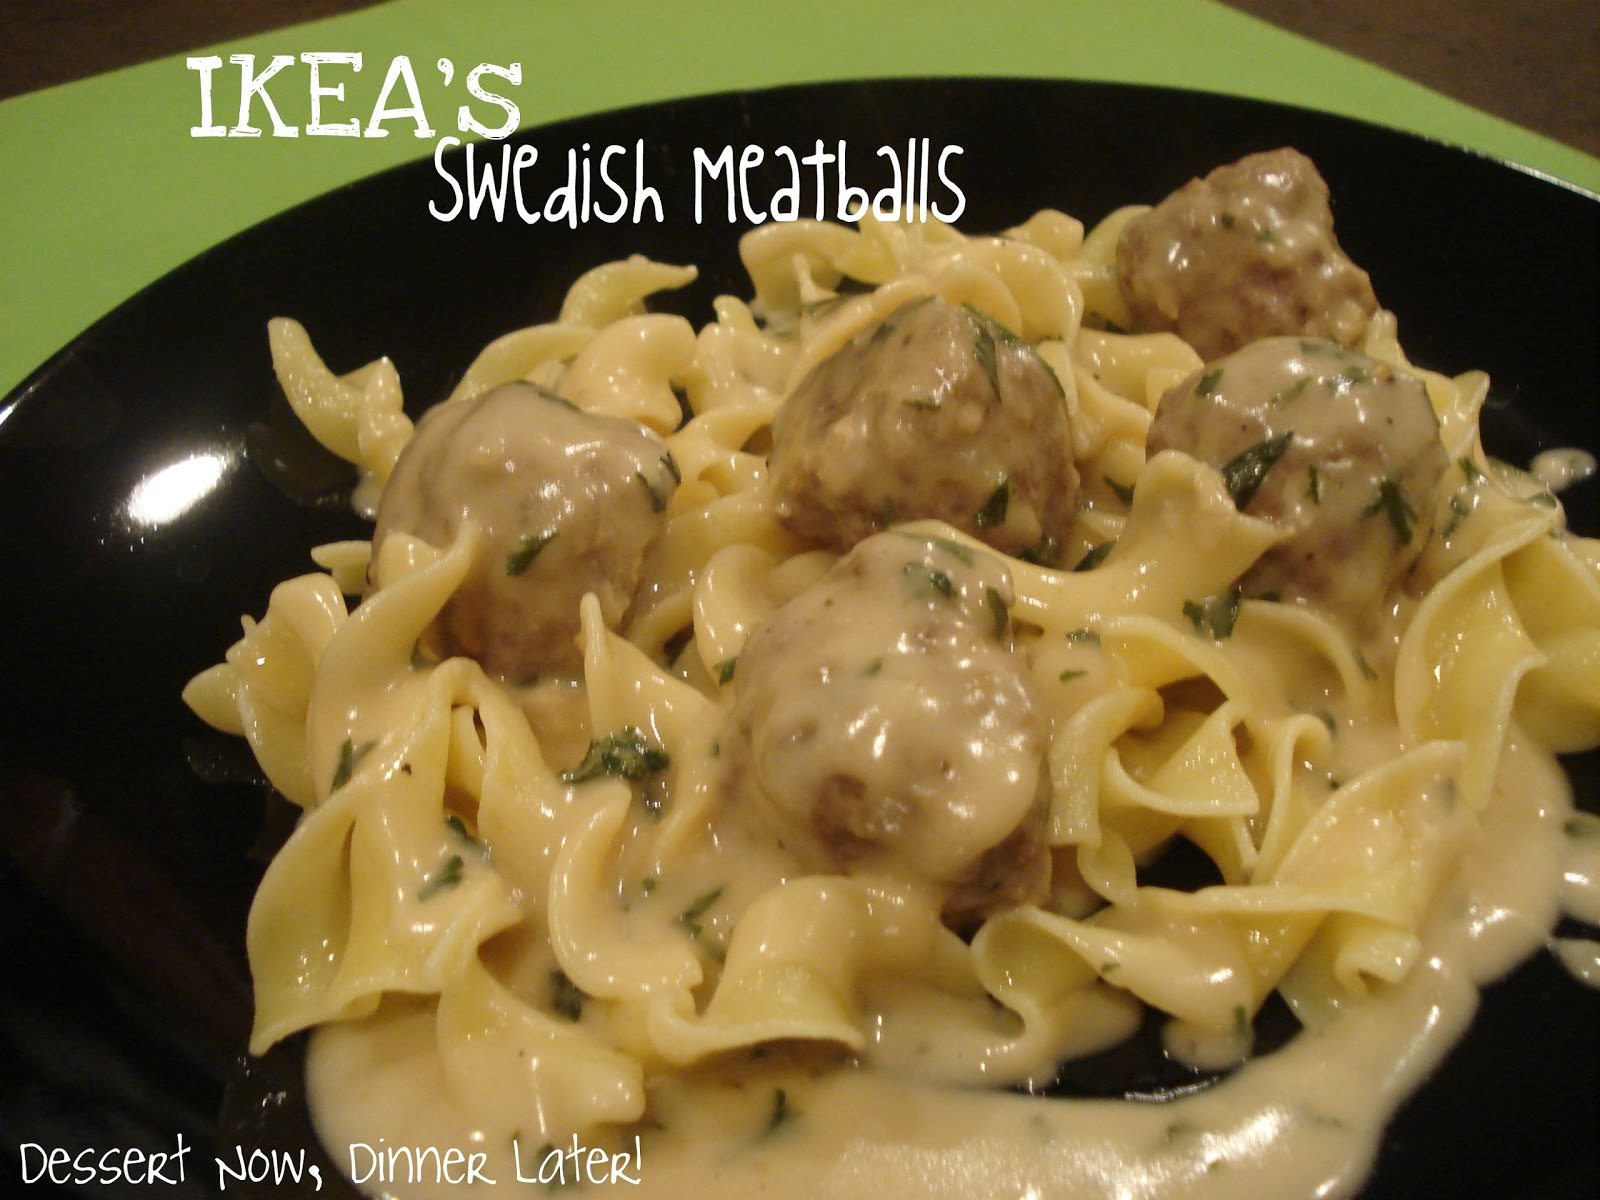 Dessert Now, Dinner Later!: IKEA's Swedish Meatballs